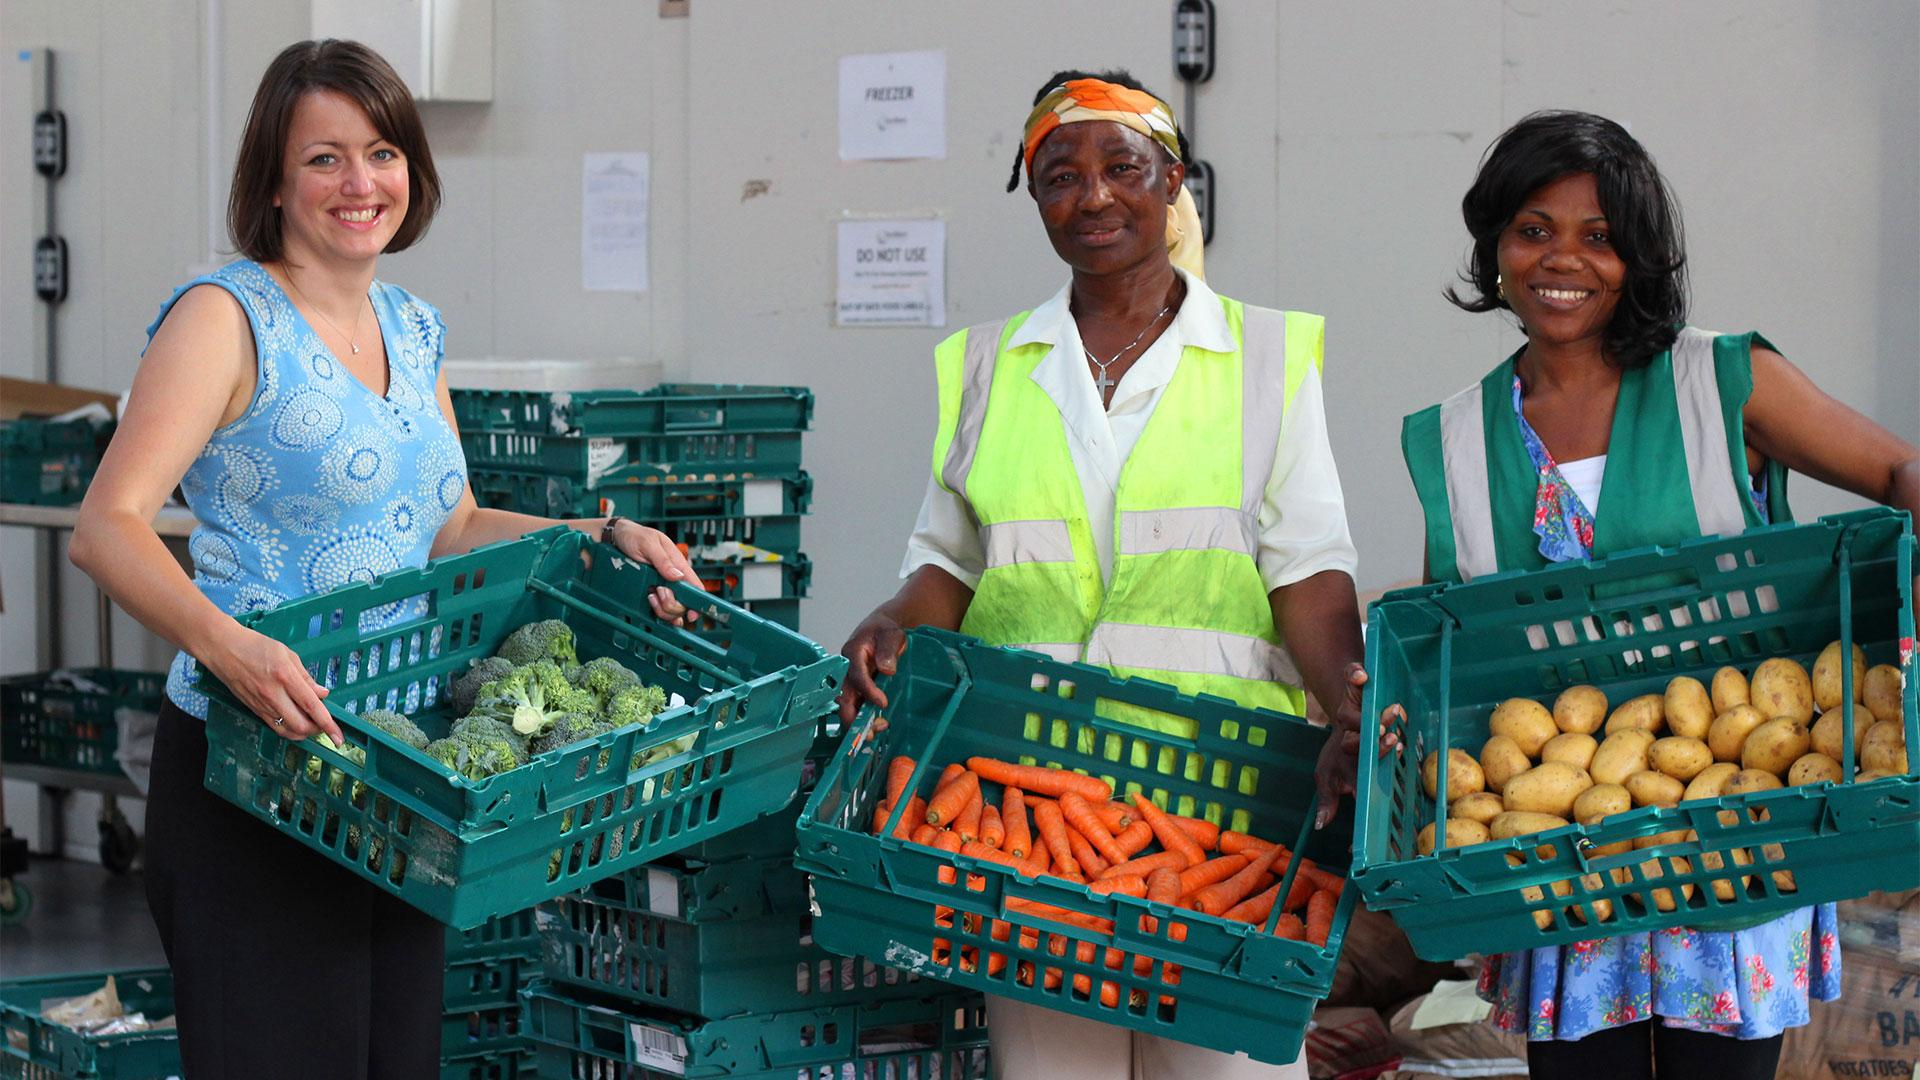 Volunteers at food-waste charity FareShare